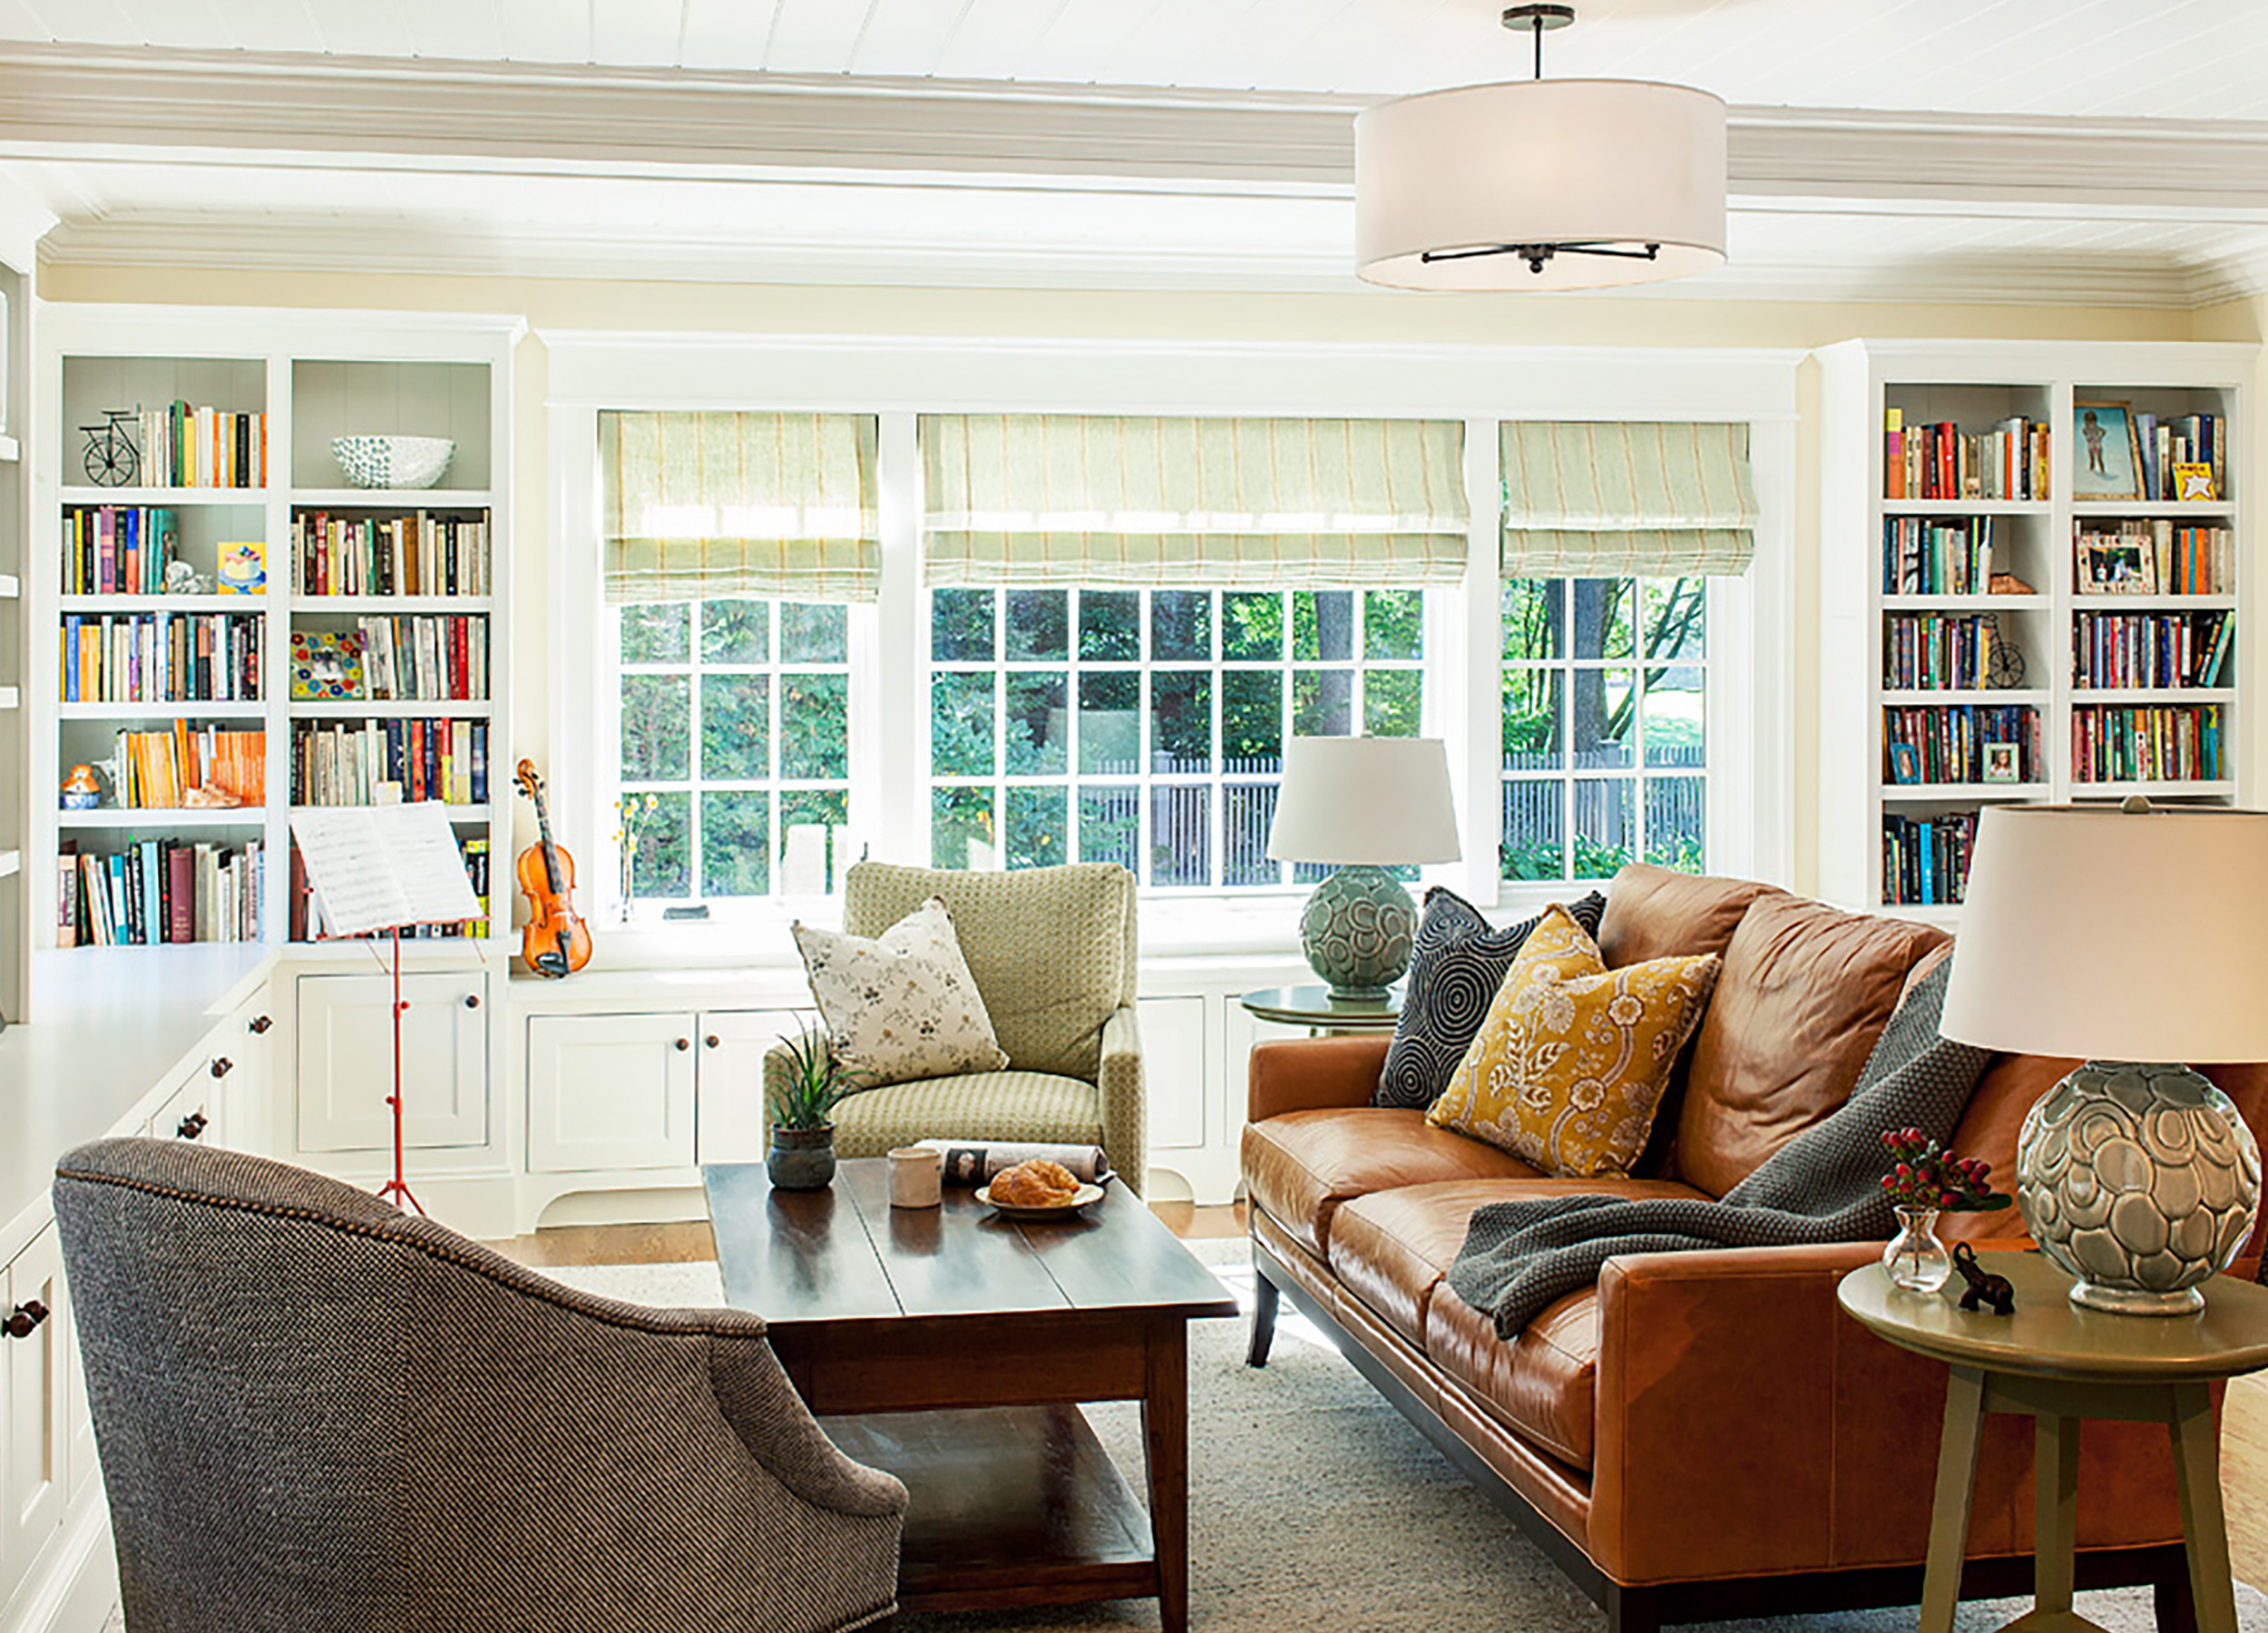 Kmid brookline townhouse kmid for New england style homes interiors